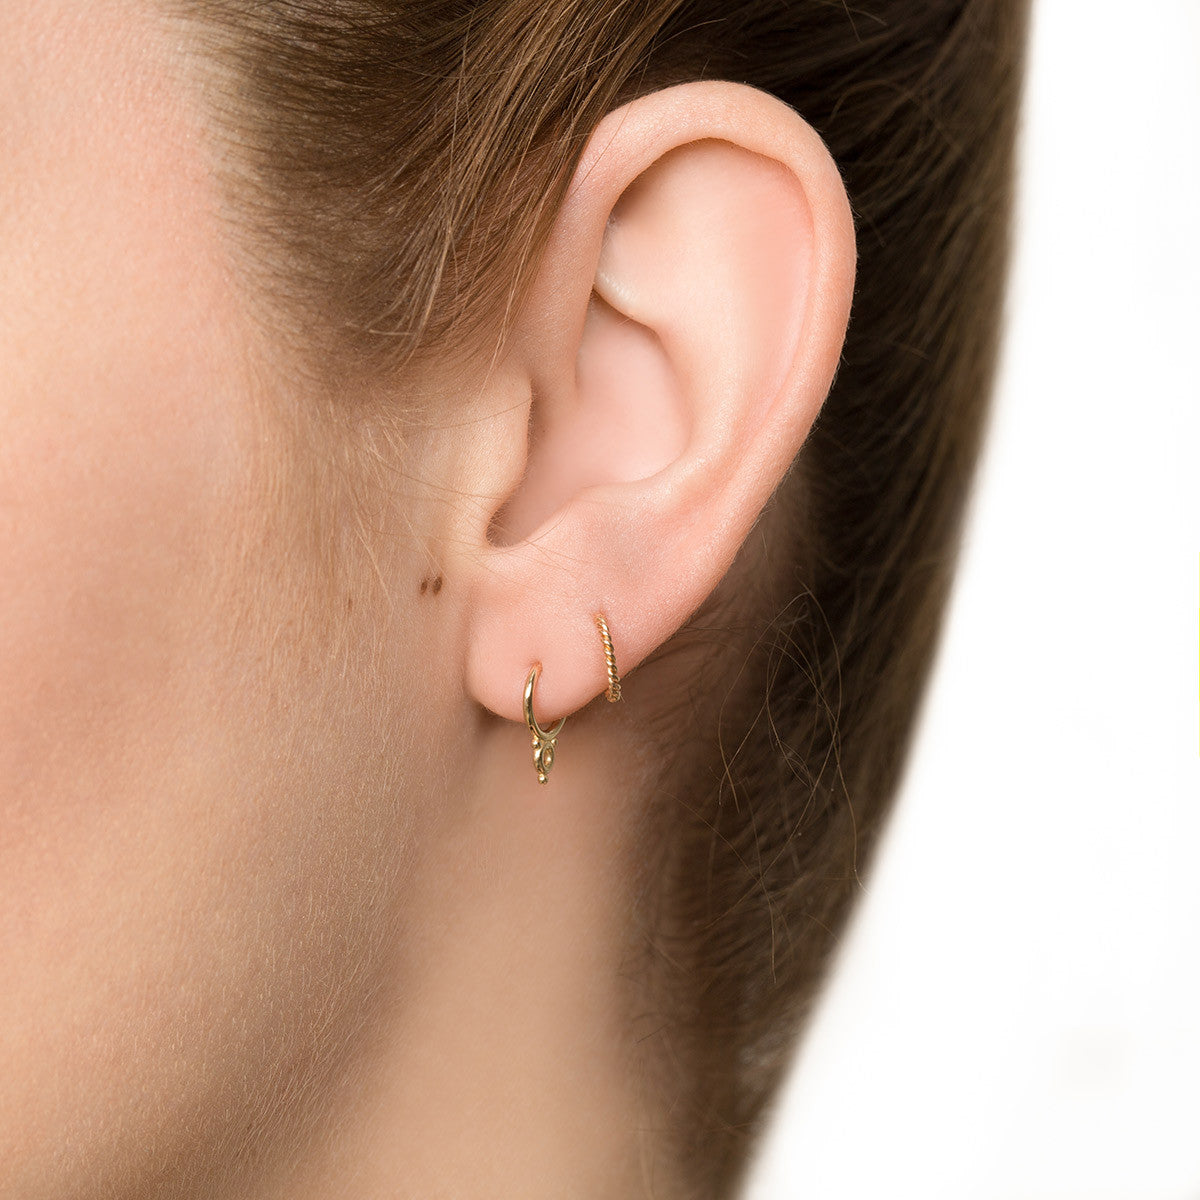 Are You Am I - Stariel FINE Earring